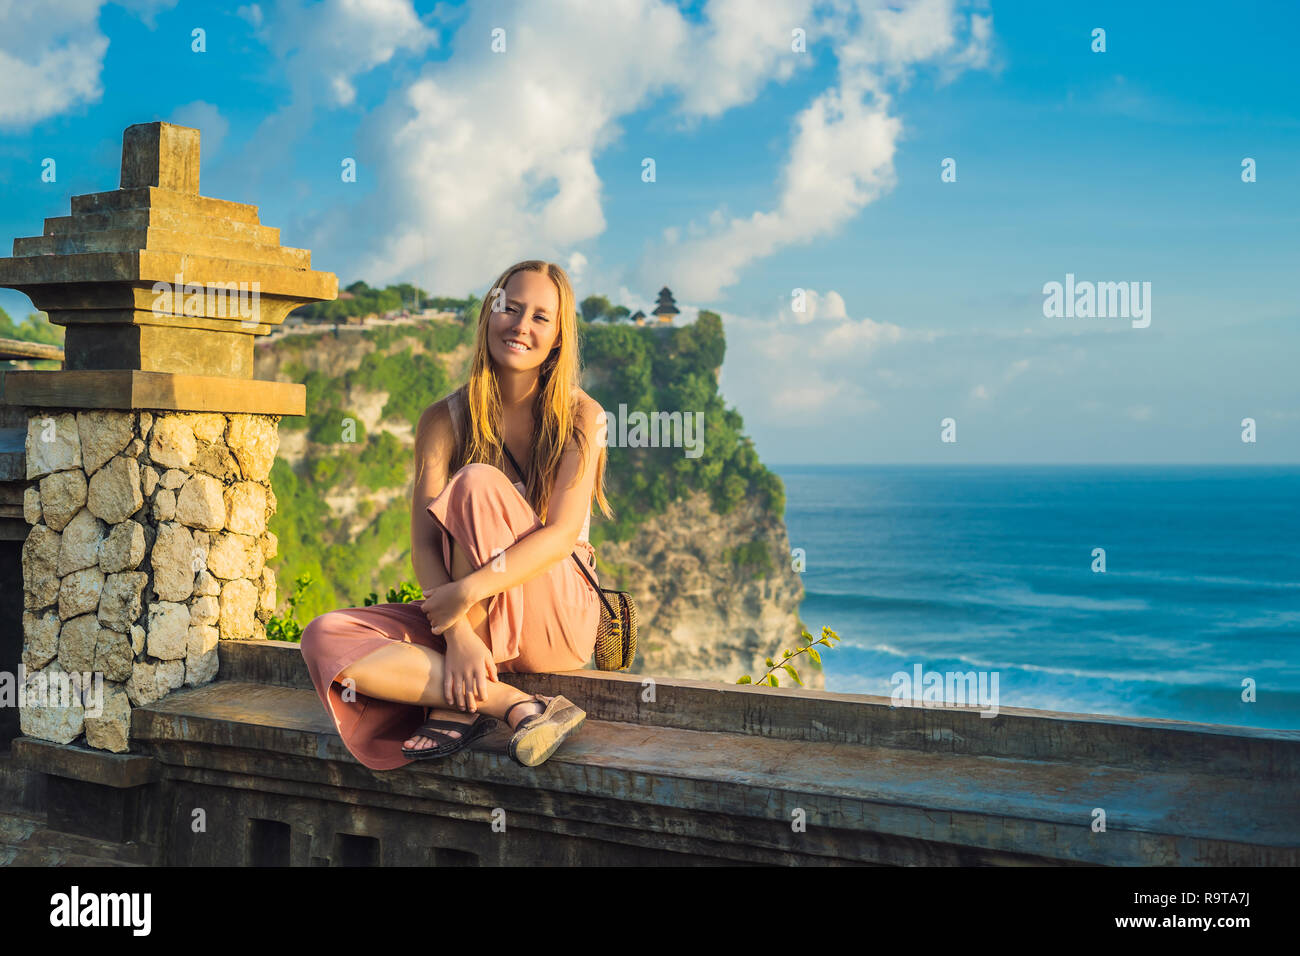 Young woman traveler in Pura Luhur Uluwatu temple, Bali, Indonesia. Amazing landscape - cliff with blue sky and sea Stock Photo